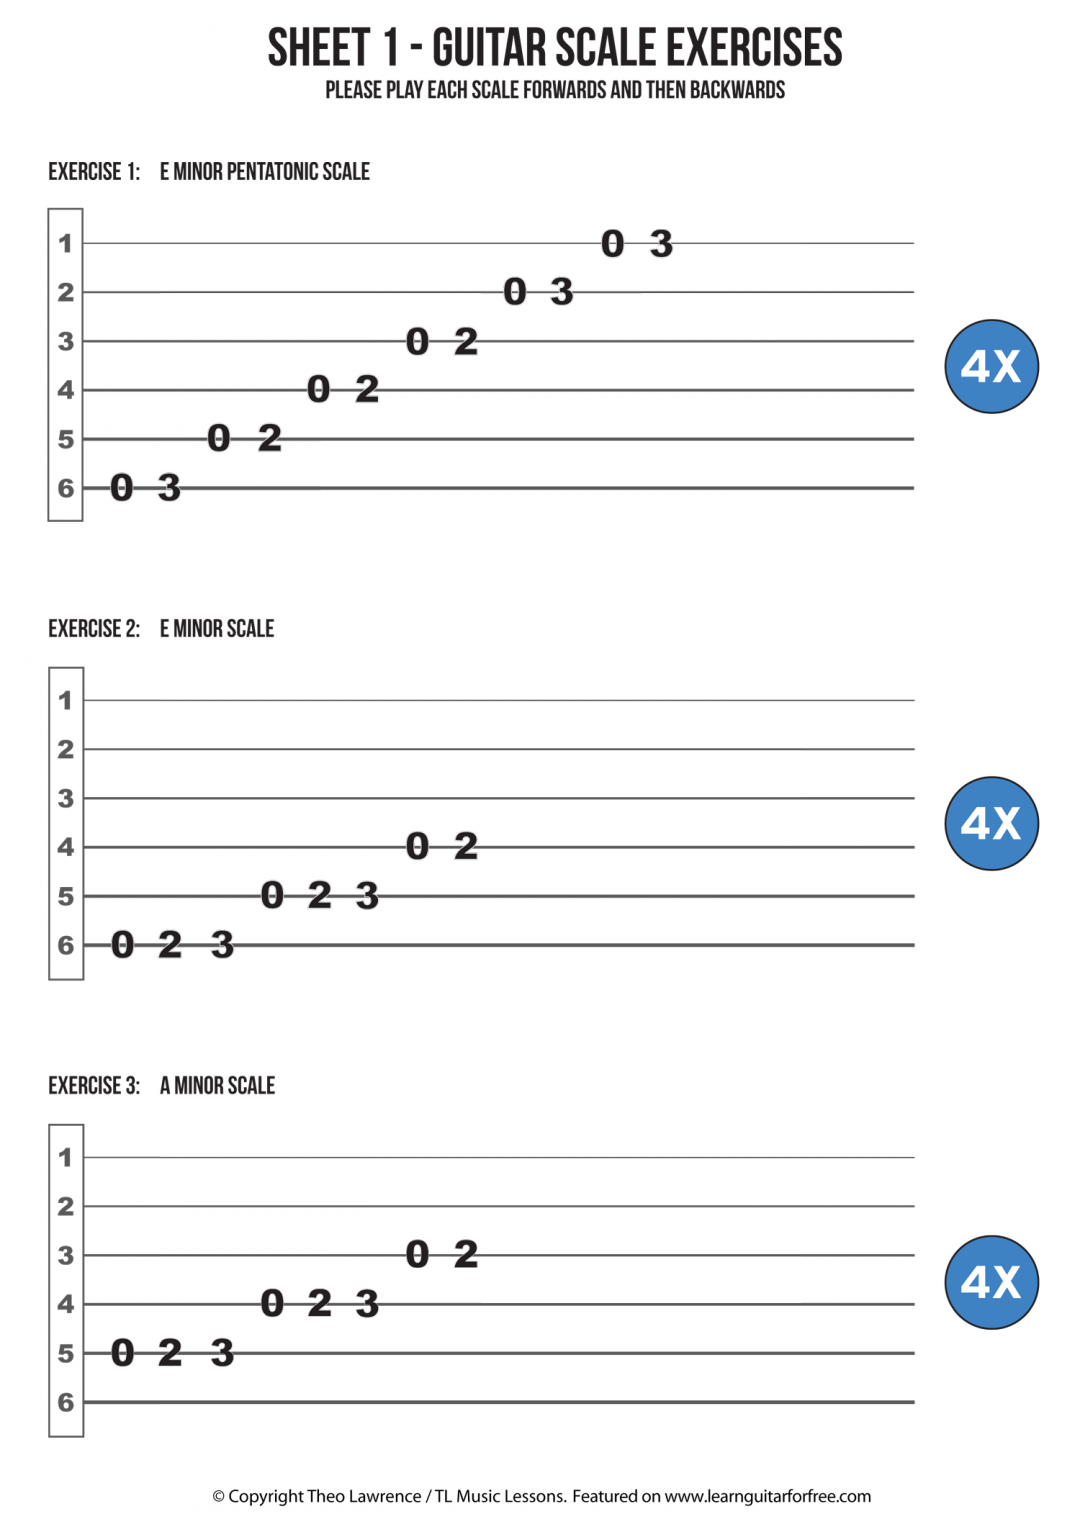 Sheet 1 – Easy Reading Guitar Scale Exercises